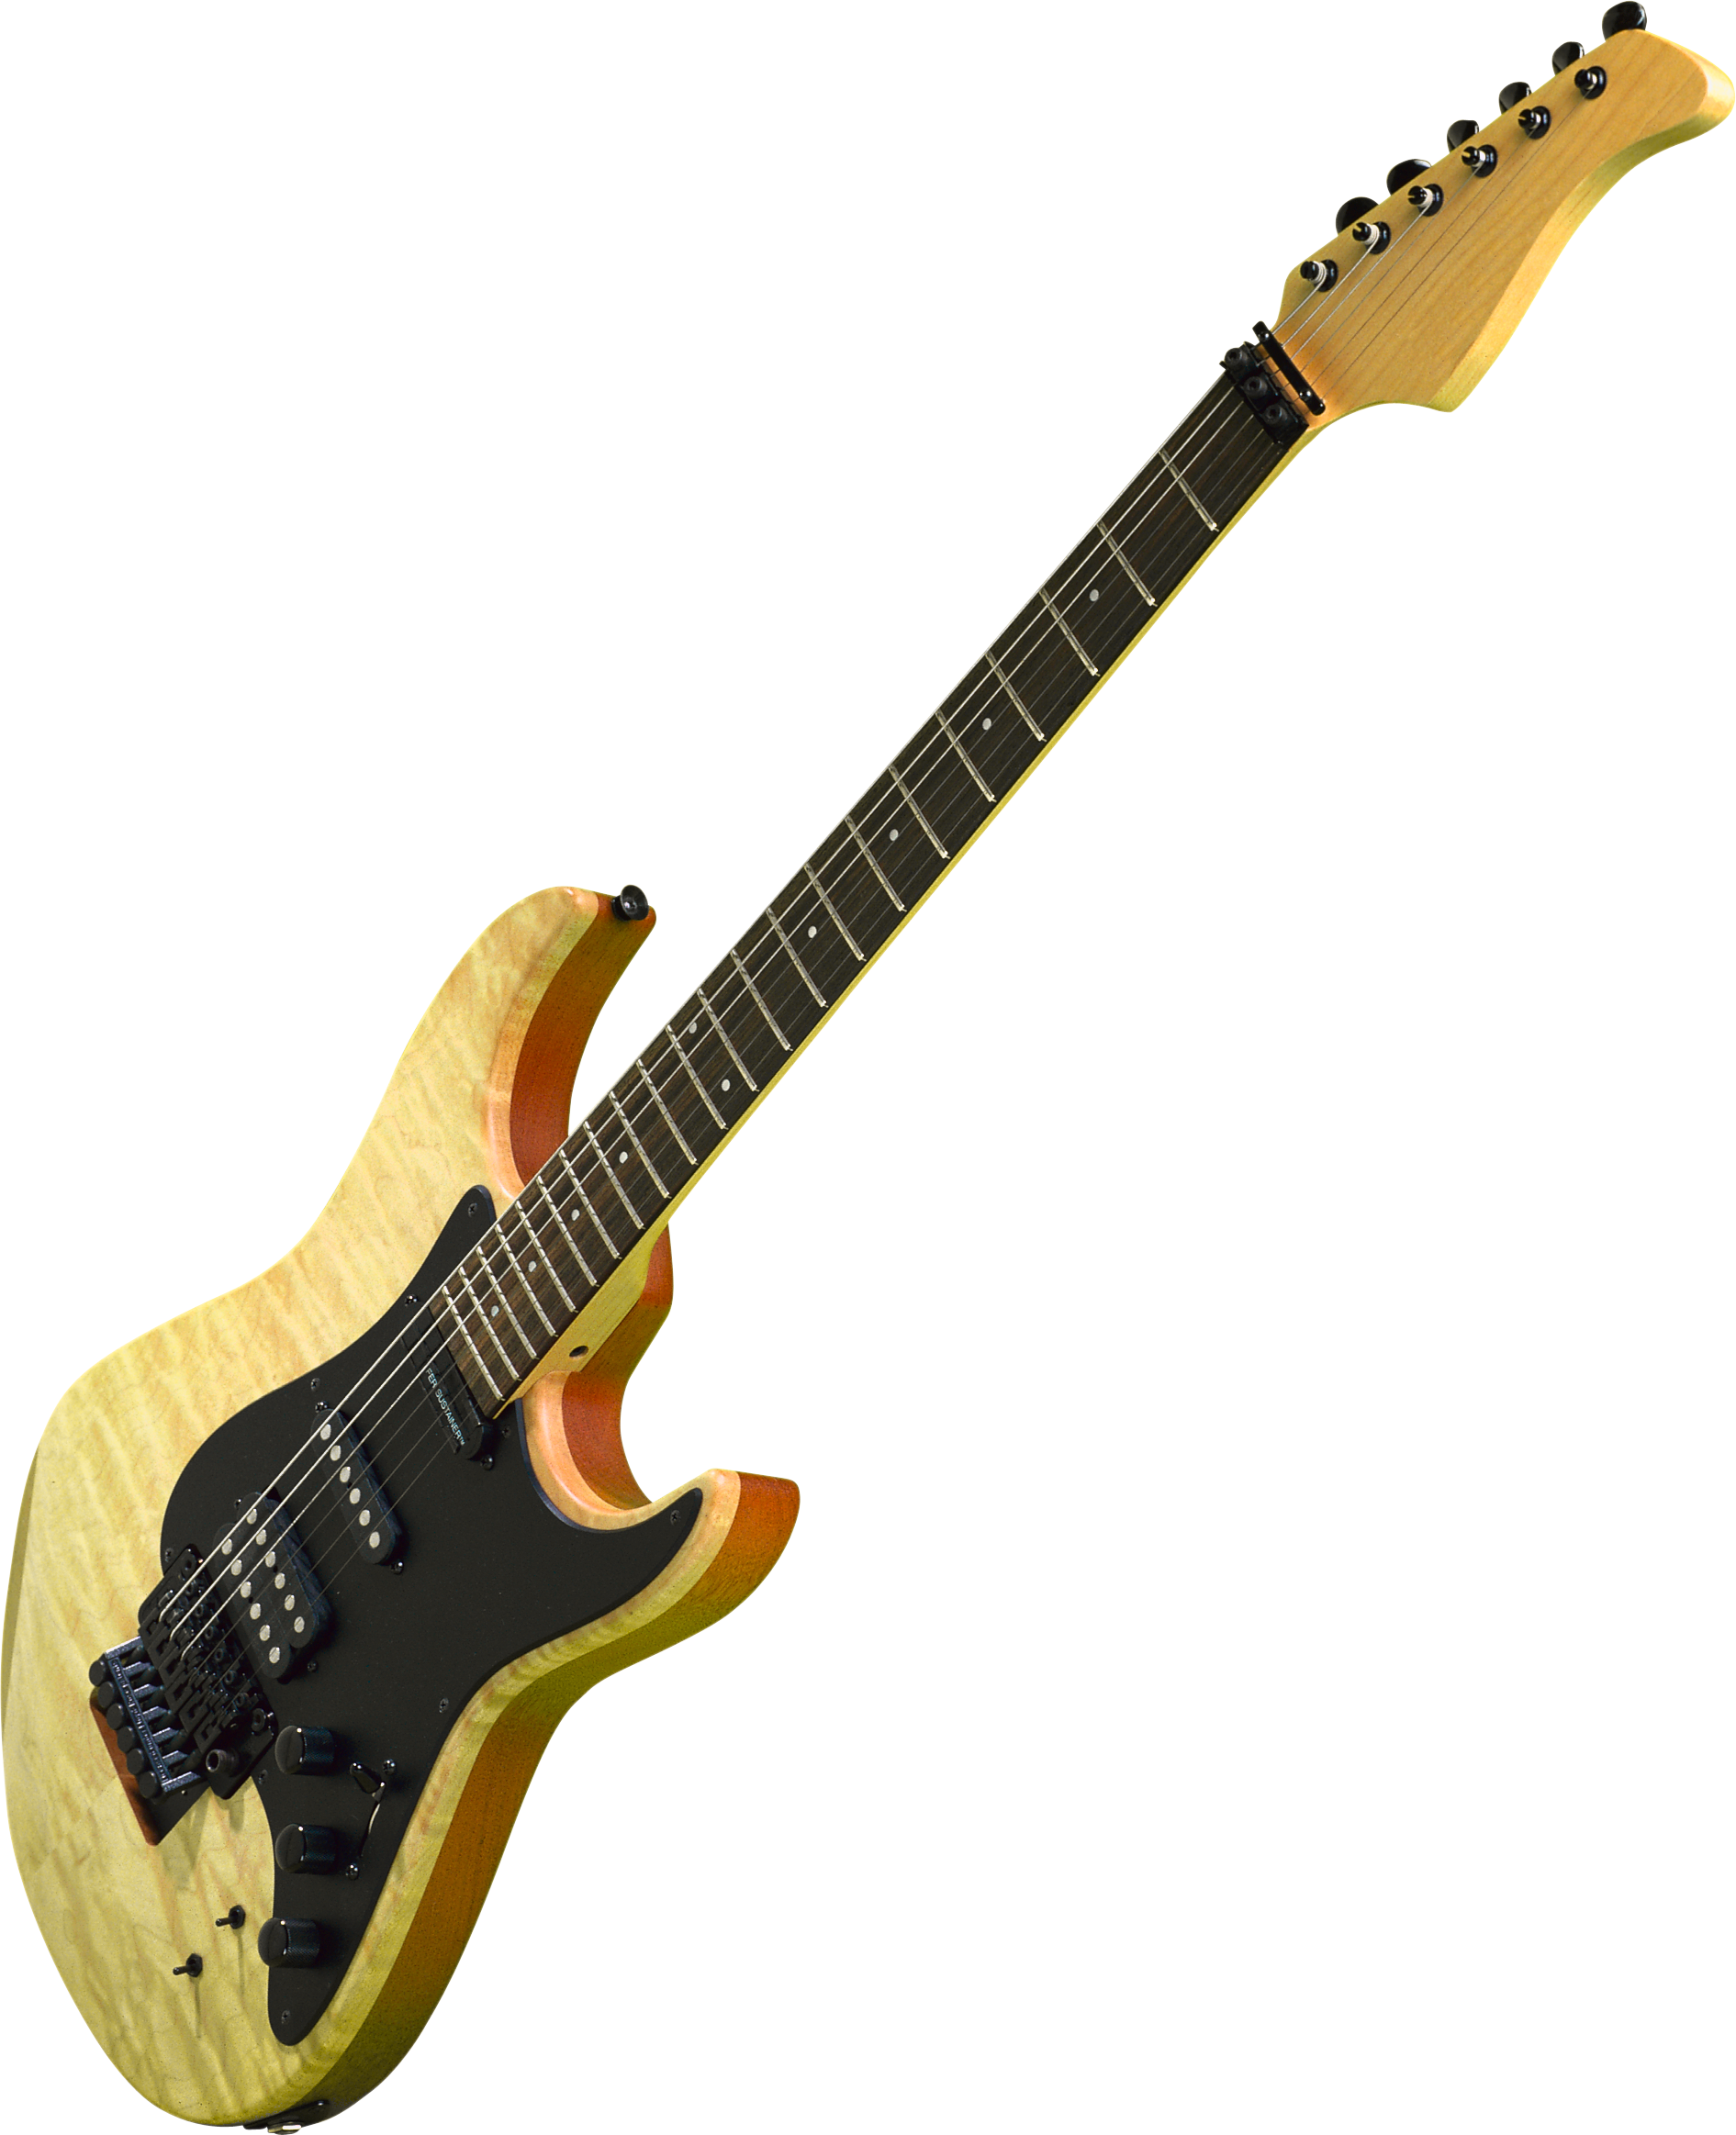 Electric guitar PNG image